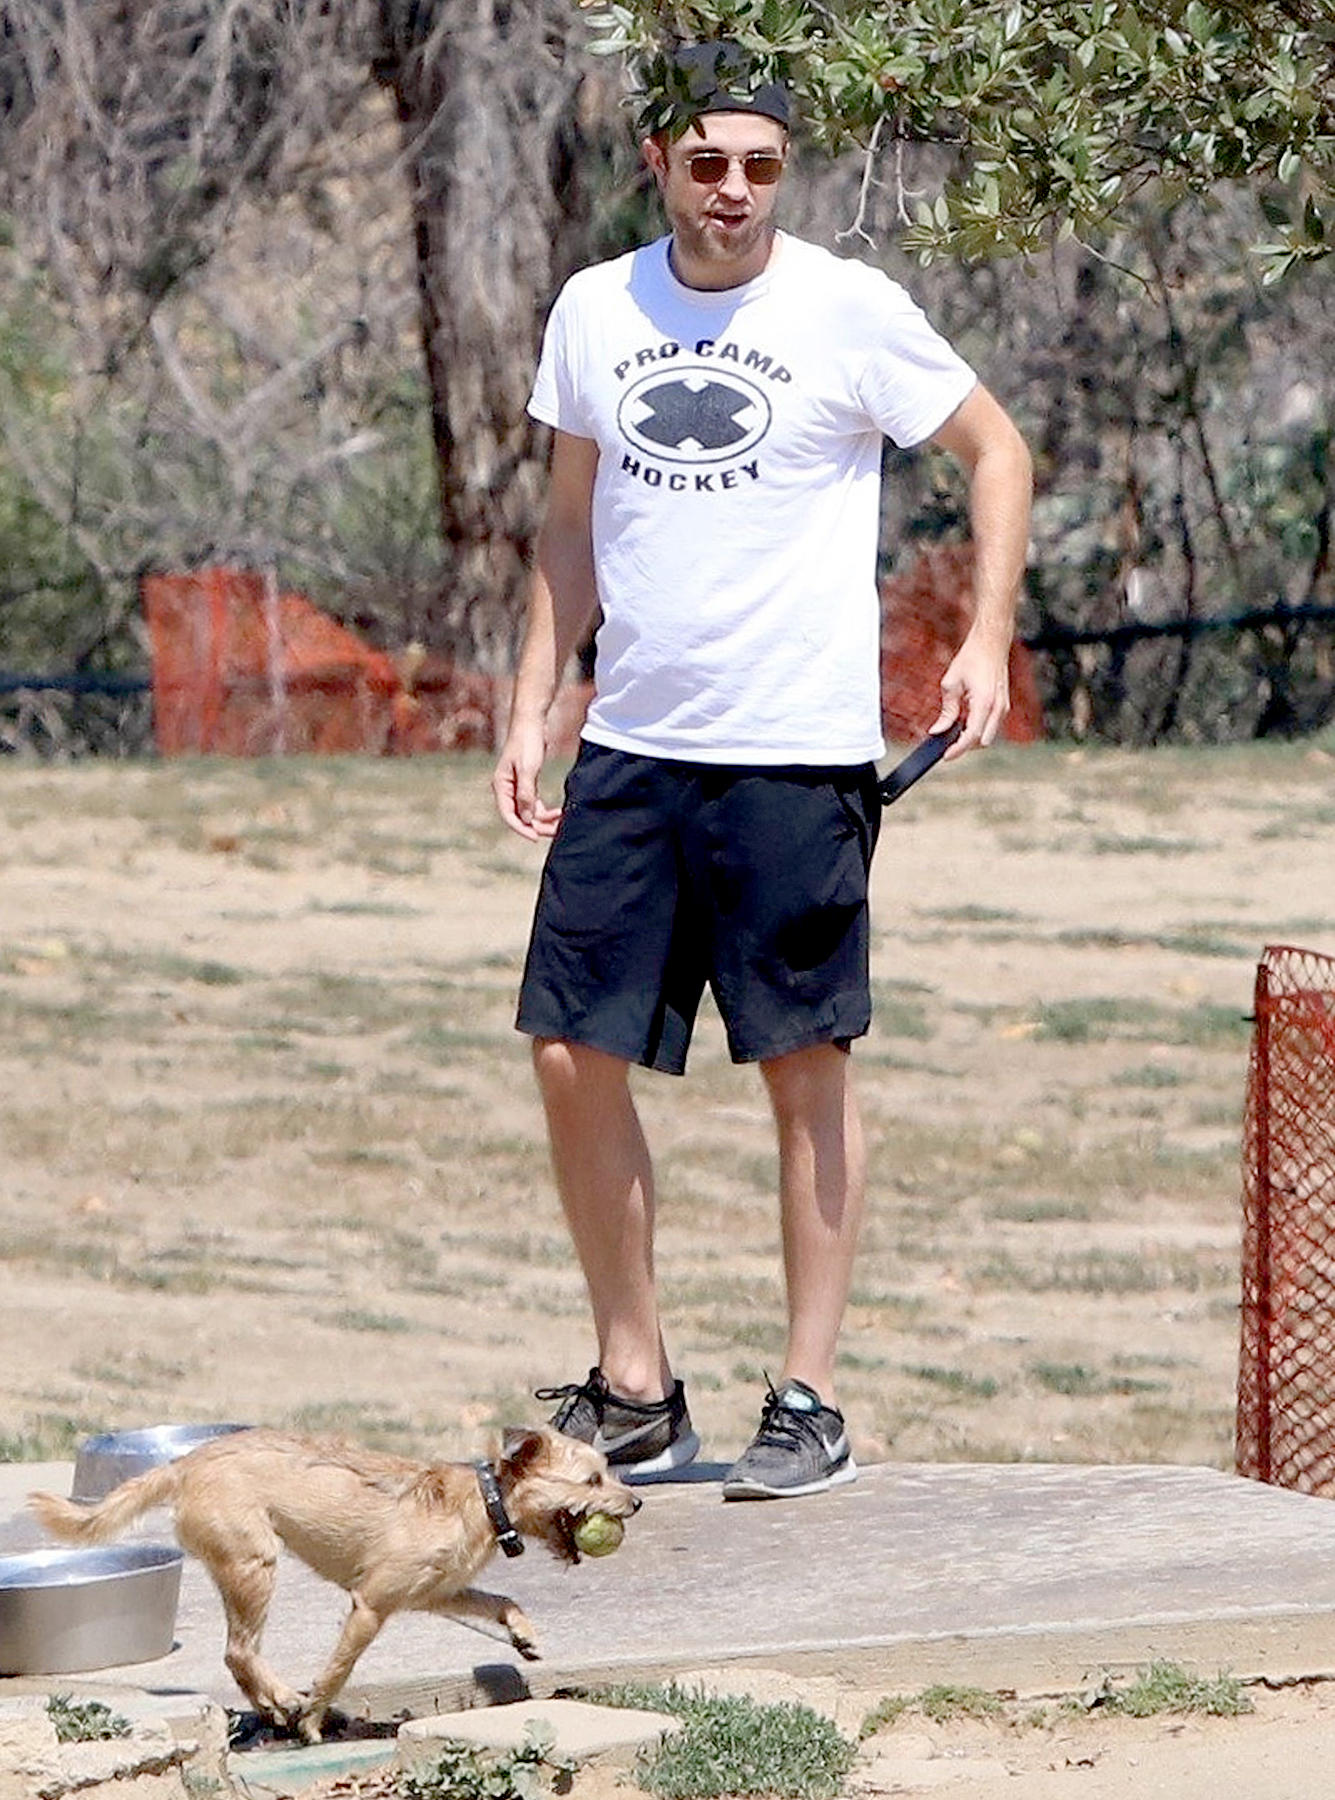 Robert Pattinson enjoys a day at the dog park with his pooch on July 15, 2017.